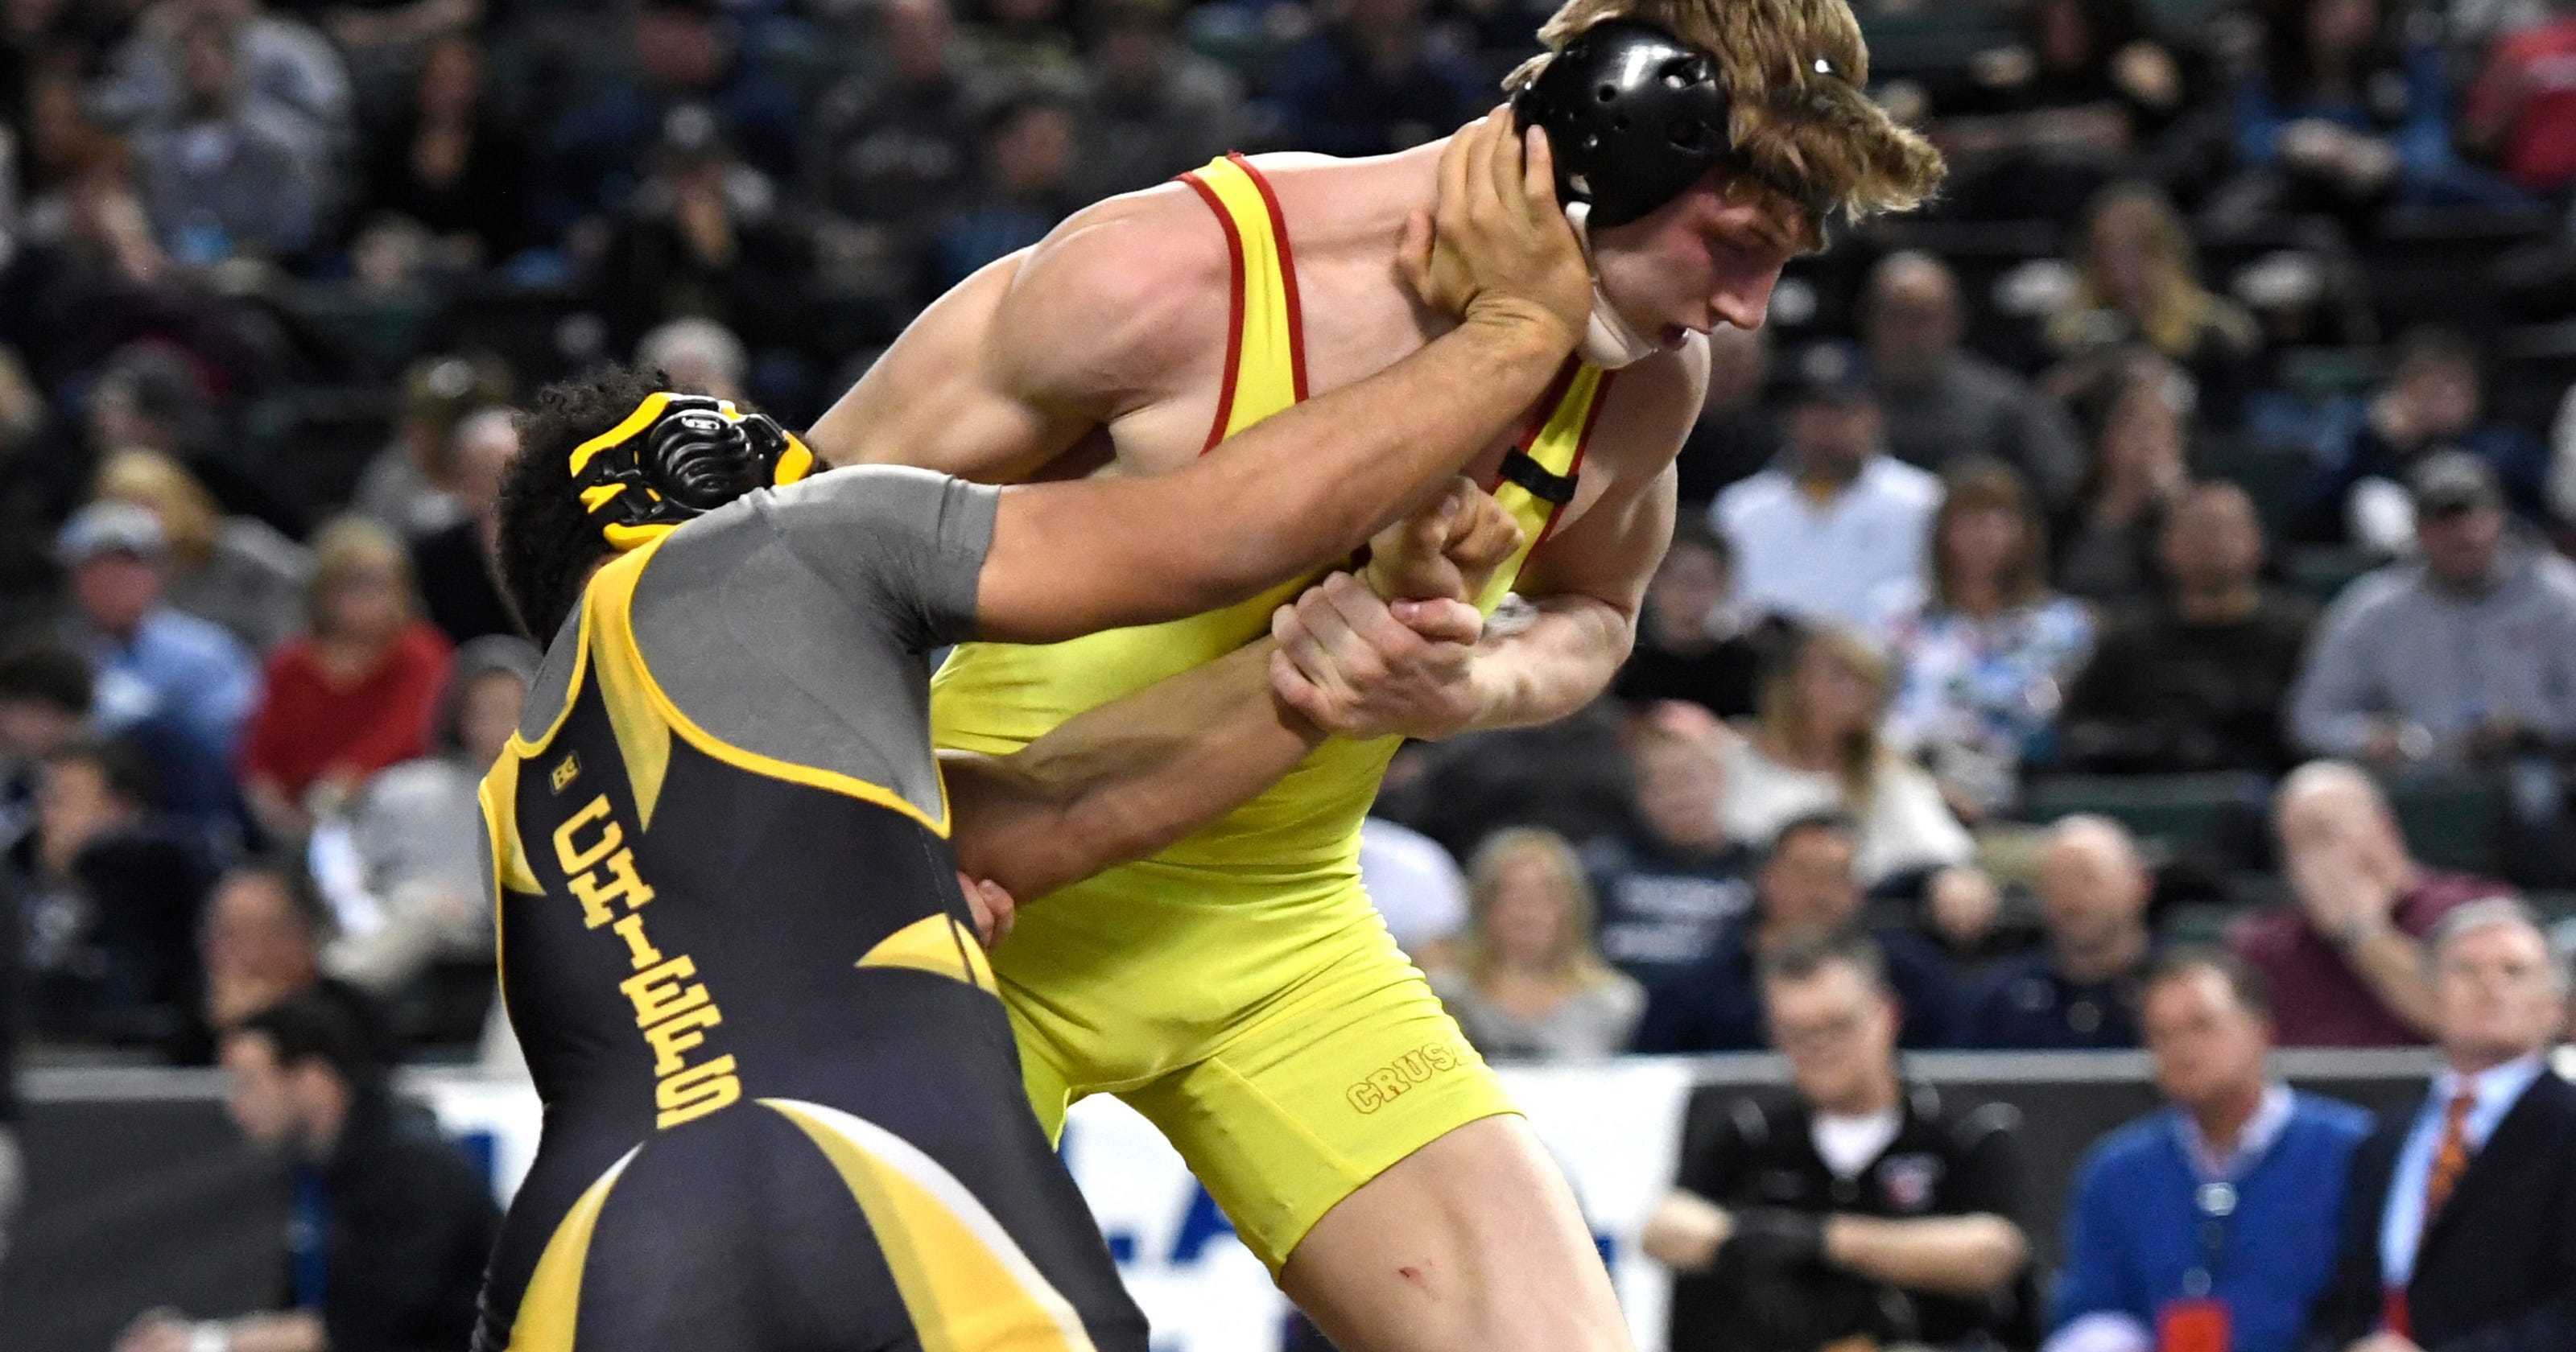 0e7f85358fc8a0 NJSIAA wrestling results from every round of the state tournament